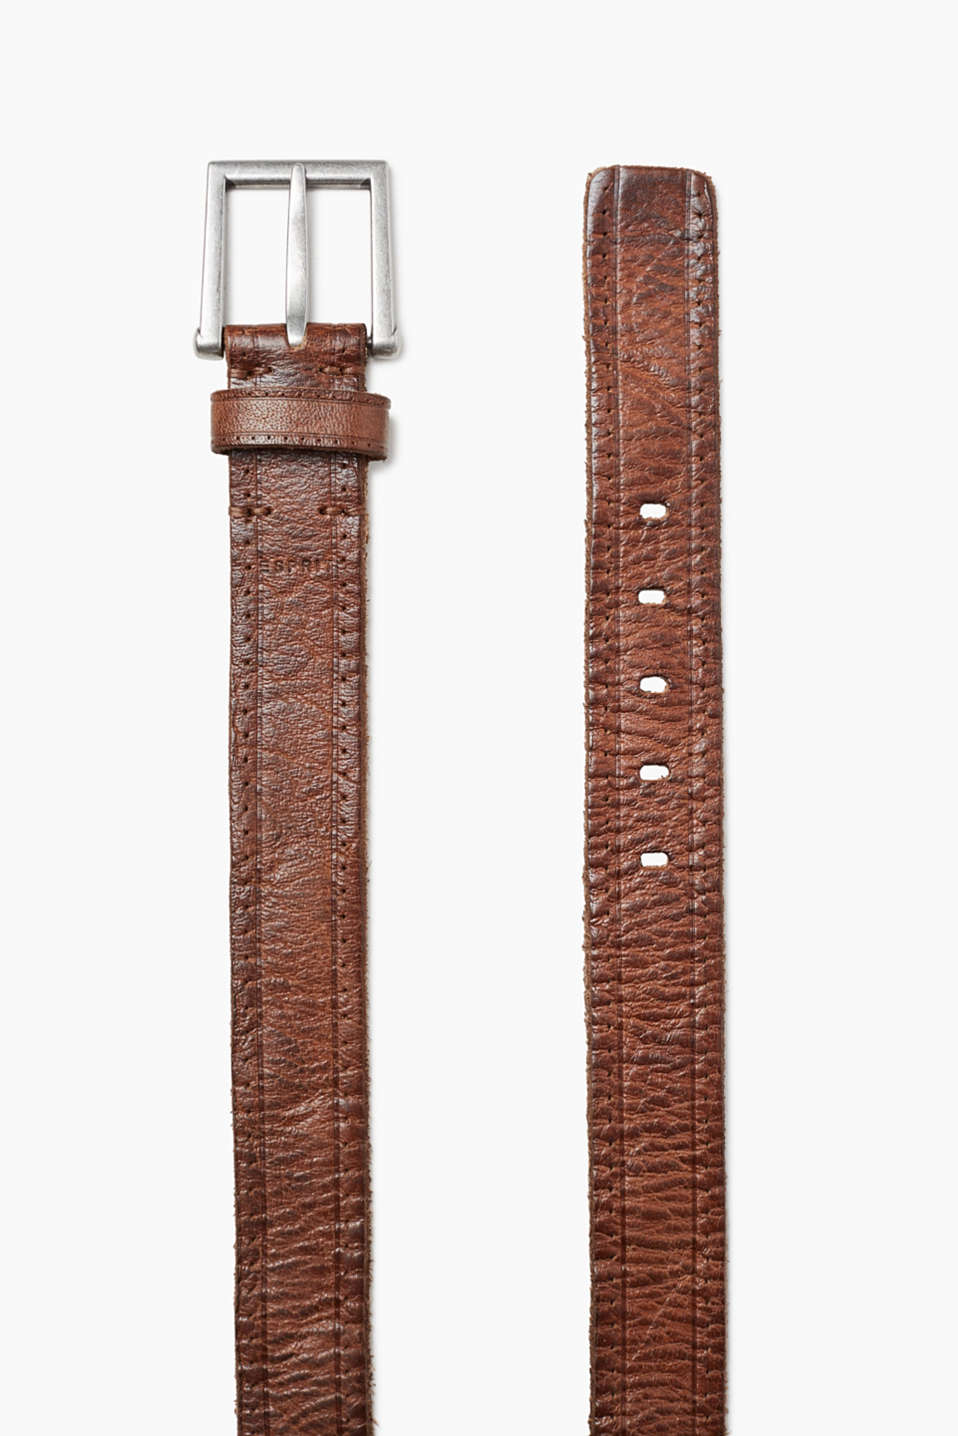 In robust buffalo leather: belt with a distinctive metal buckle